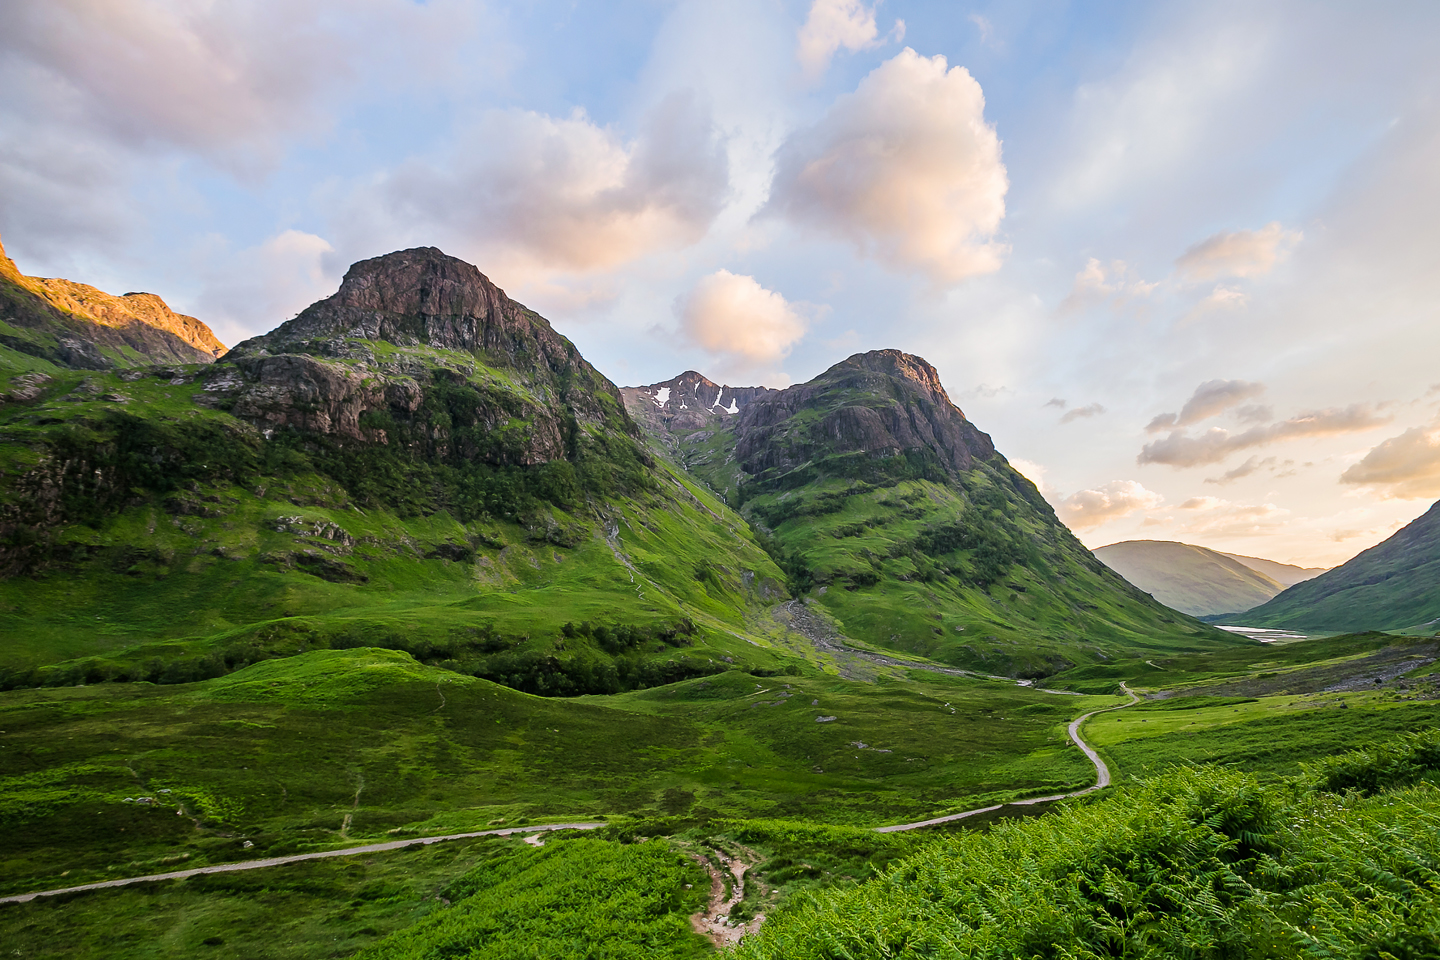 A Photo Tour of the Scottish Highlands